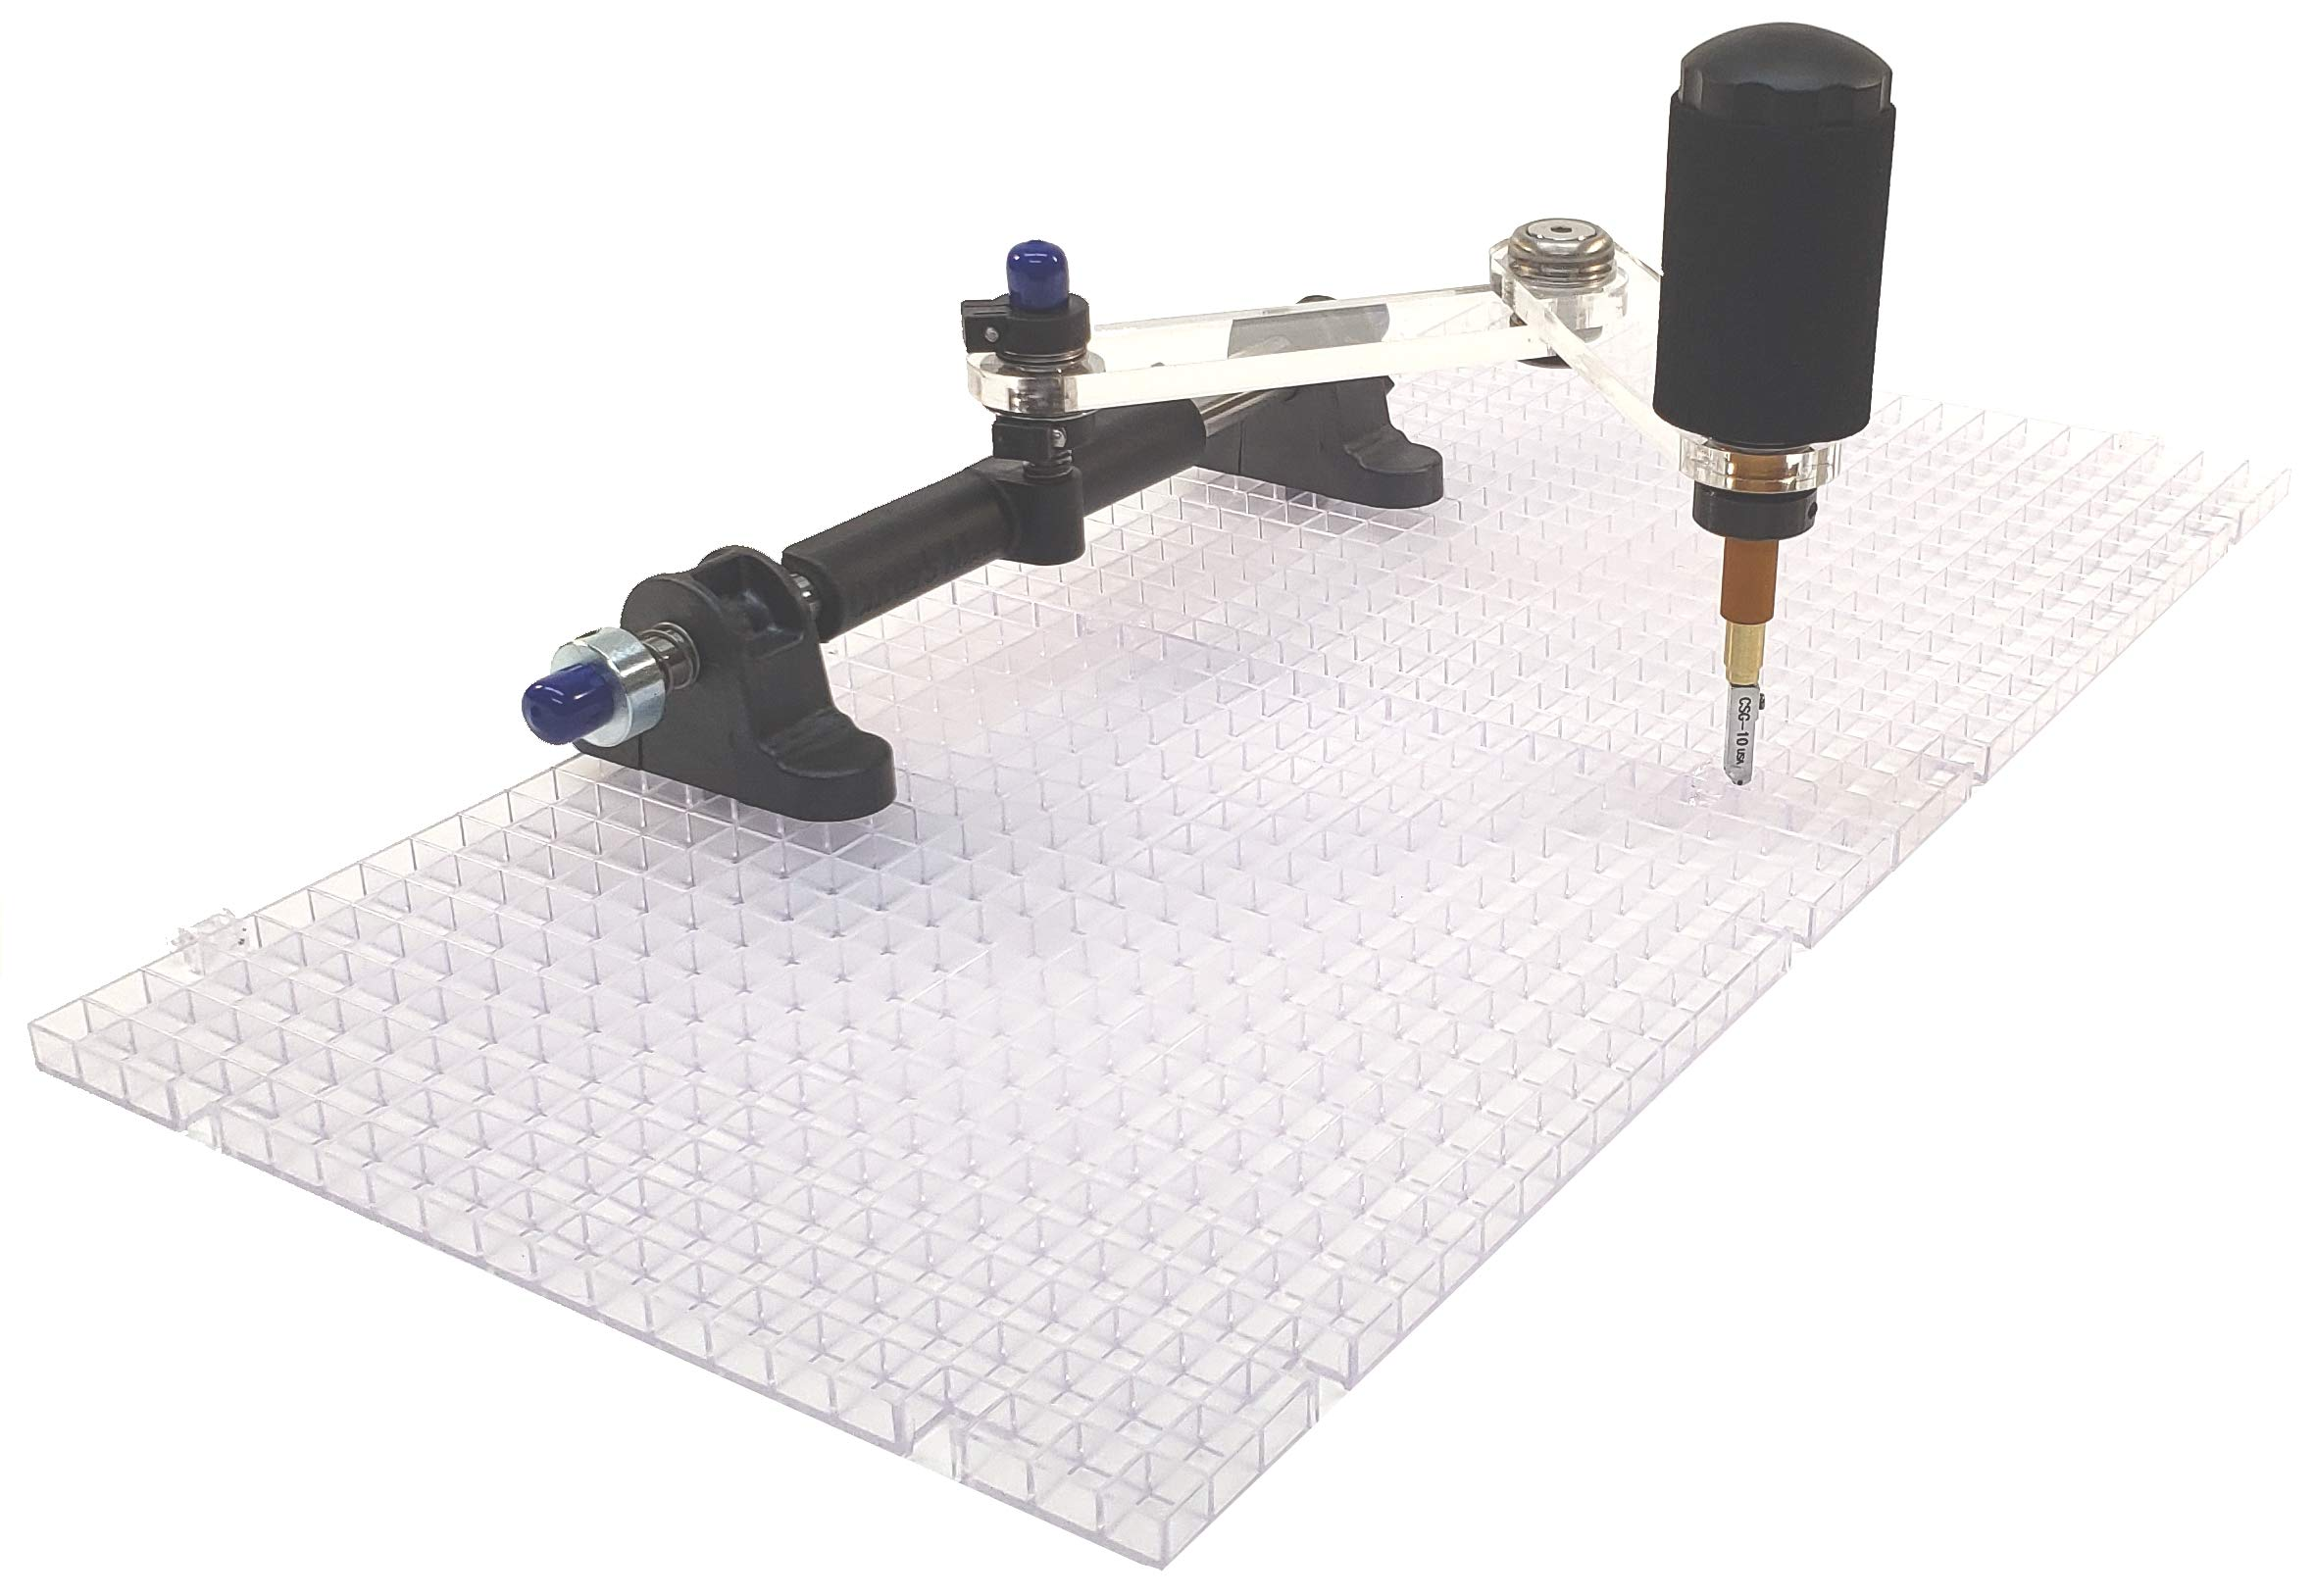 Creator's Cutter's Mate Mini E X T R A Glass Cutting System - Includes Two Waffle GRIDS - Born and Made in The USA by Creator's